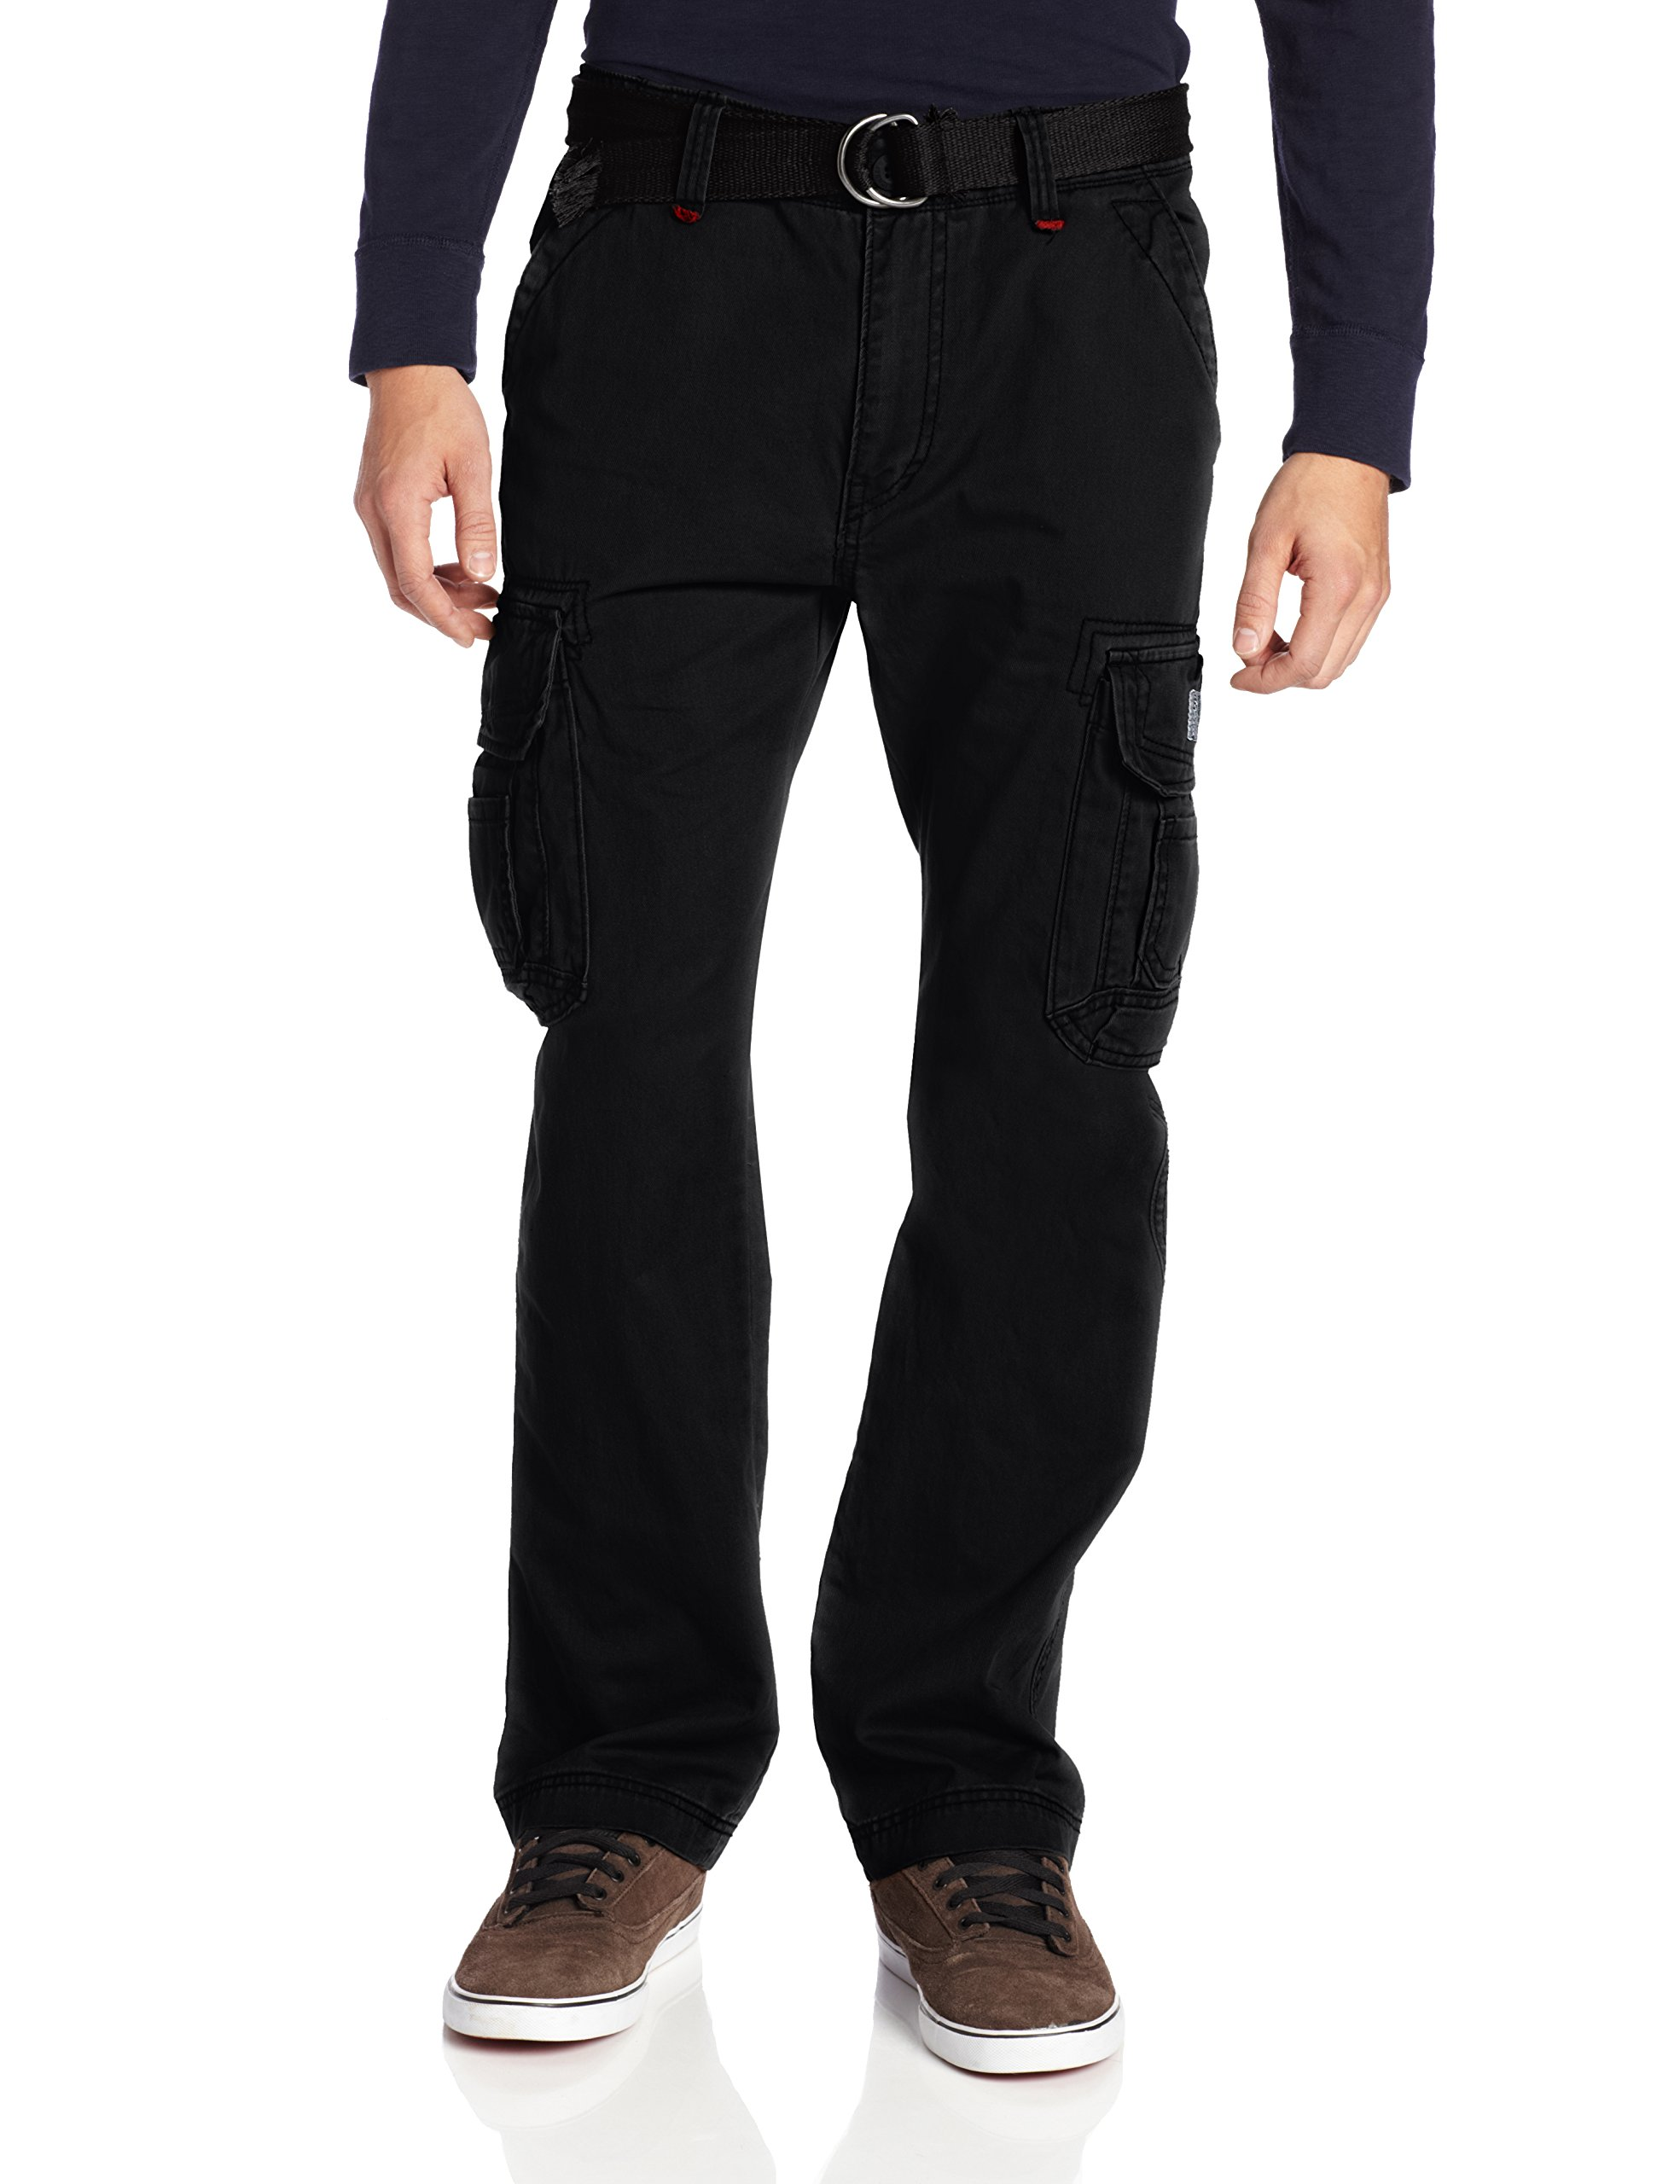 Unionbay Men's Survivor Iv Relaxed Fit Cargo Pant - Reg and Big and Tall Sizes, Black, 38x32